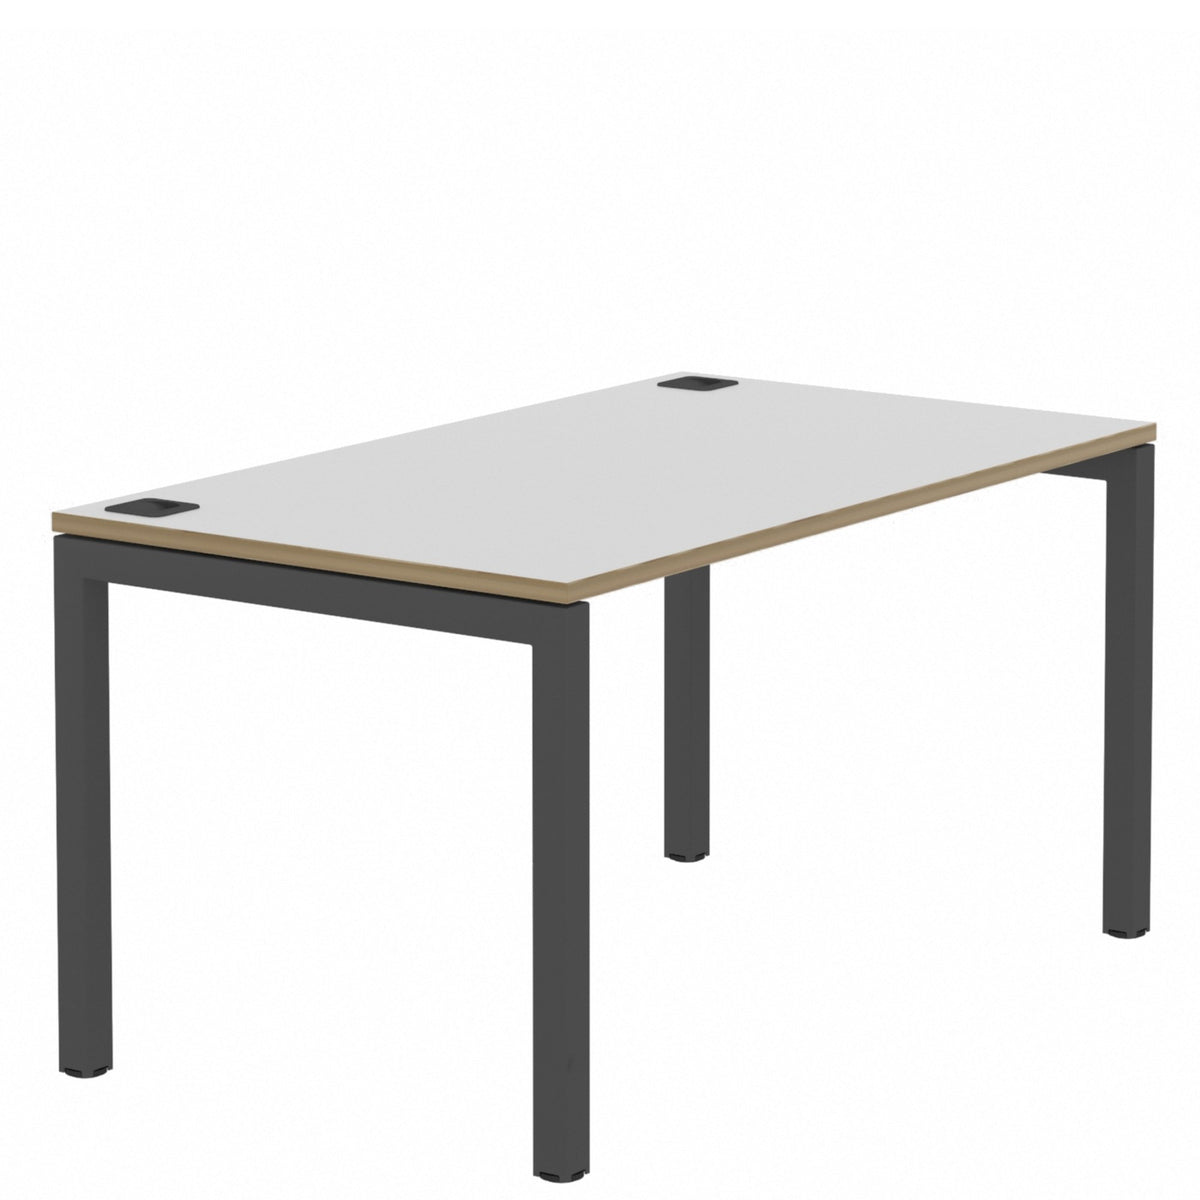 Elite Office Matrix Desk 1400mm Grey MX with Plywood Edge